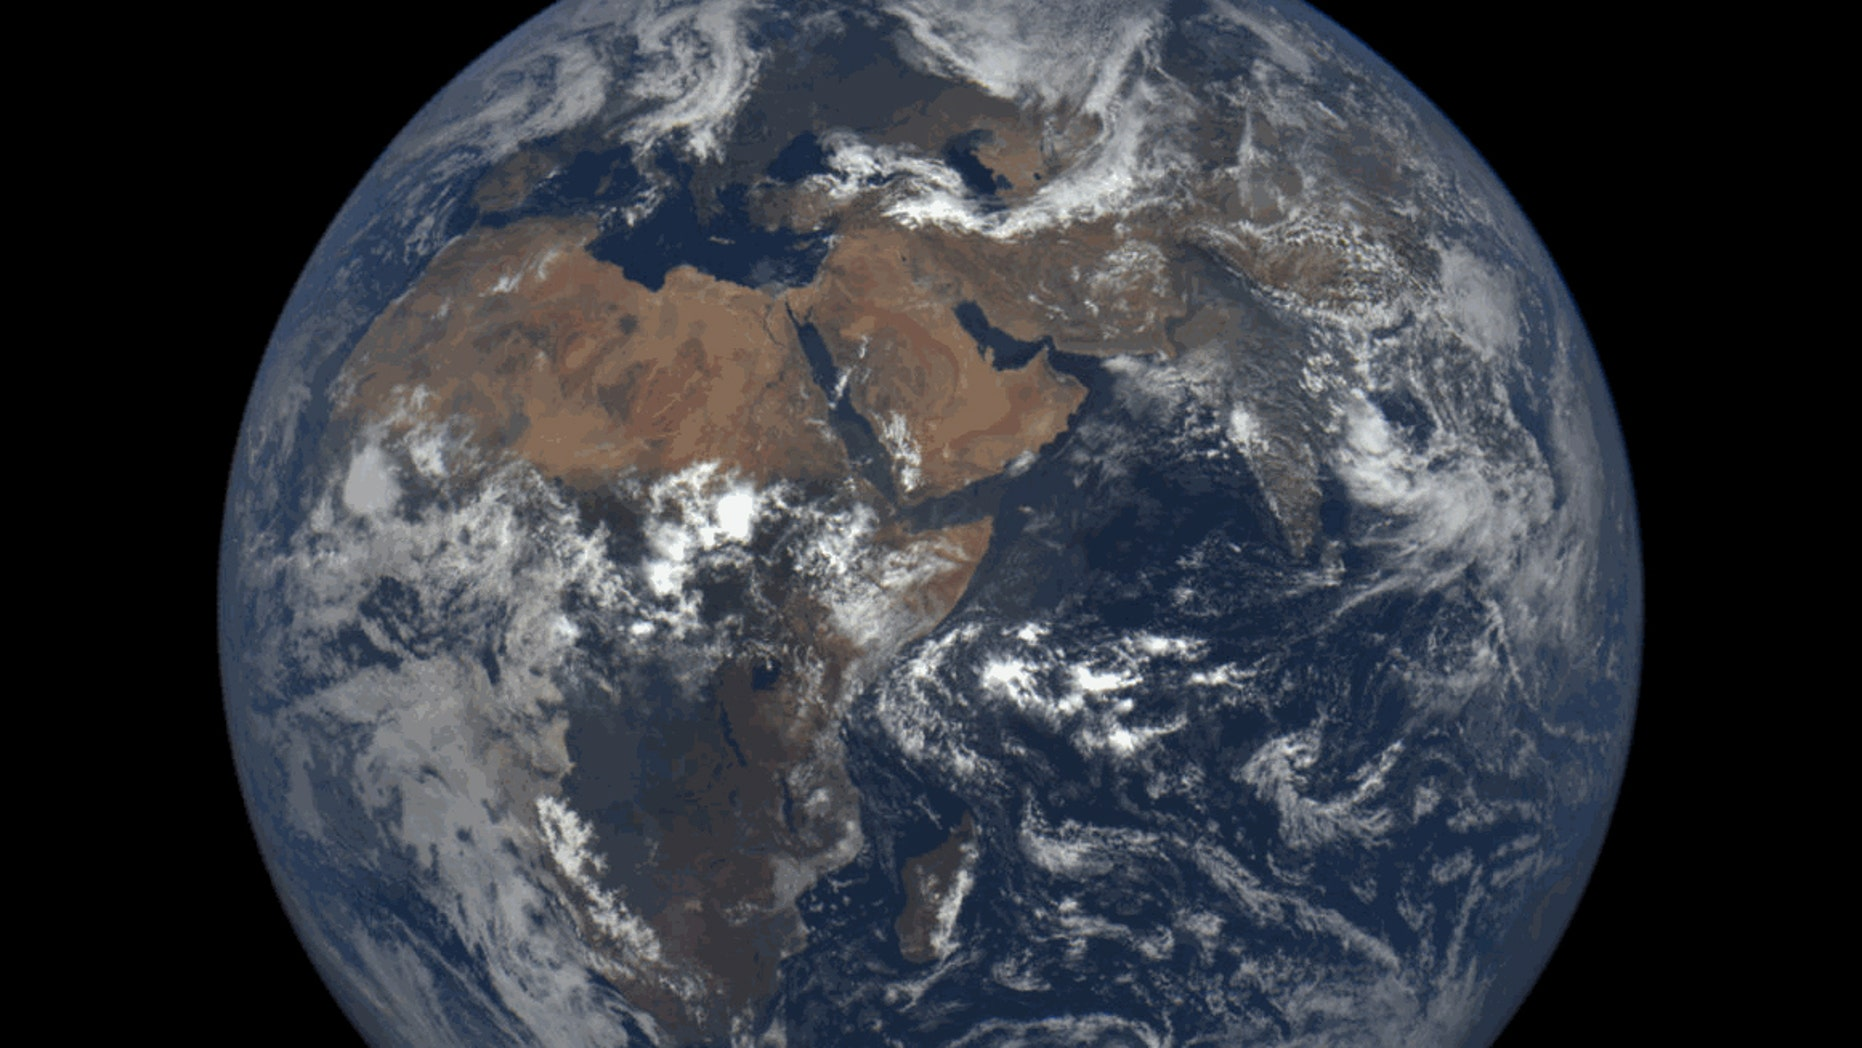 Our Spherical Earth Image